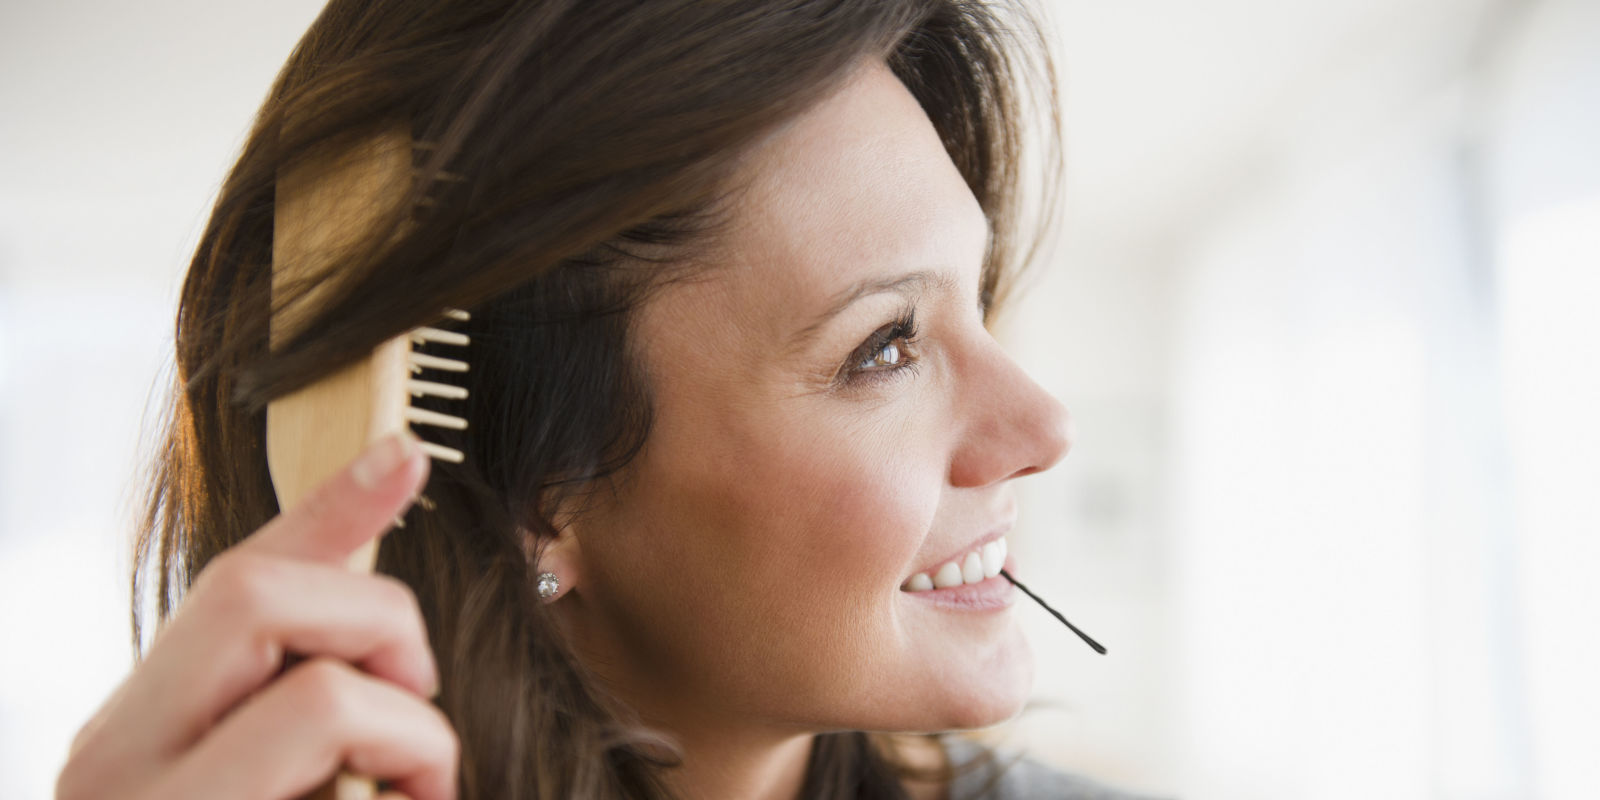 Easy Hair Styling Tips - Ways to Make the Most of Your Hair